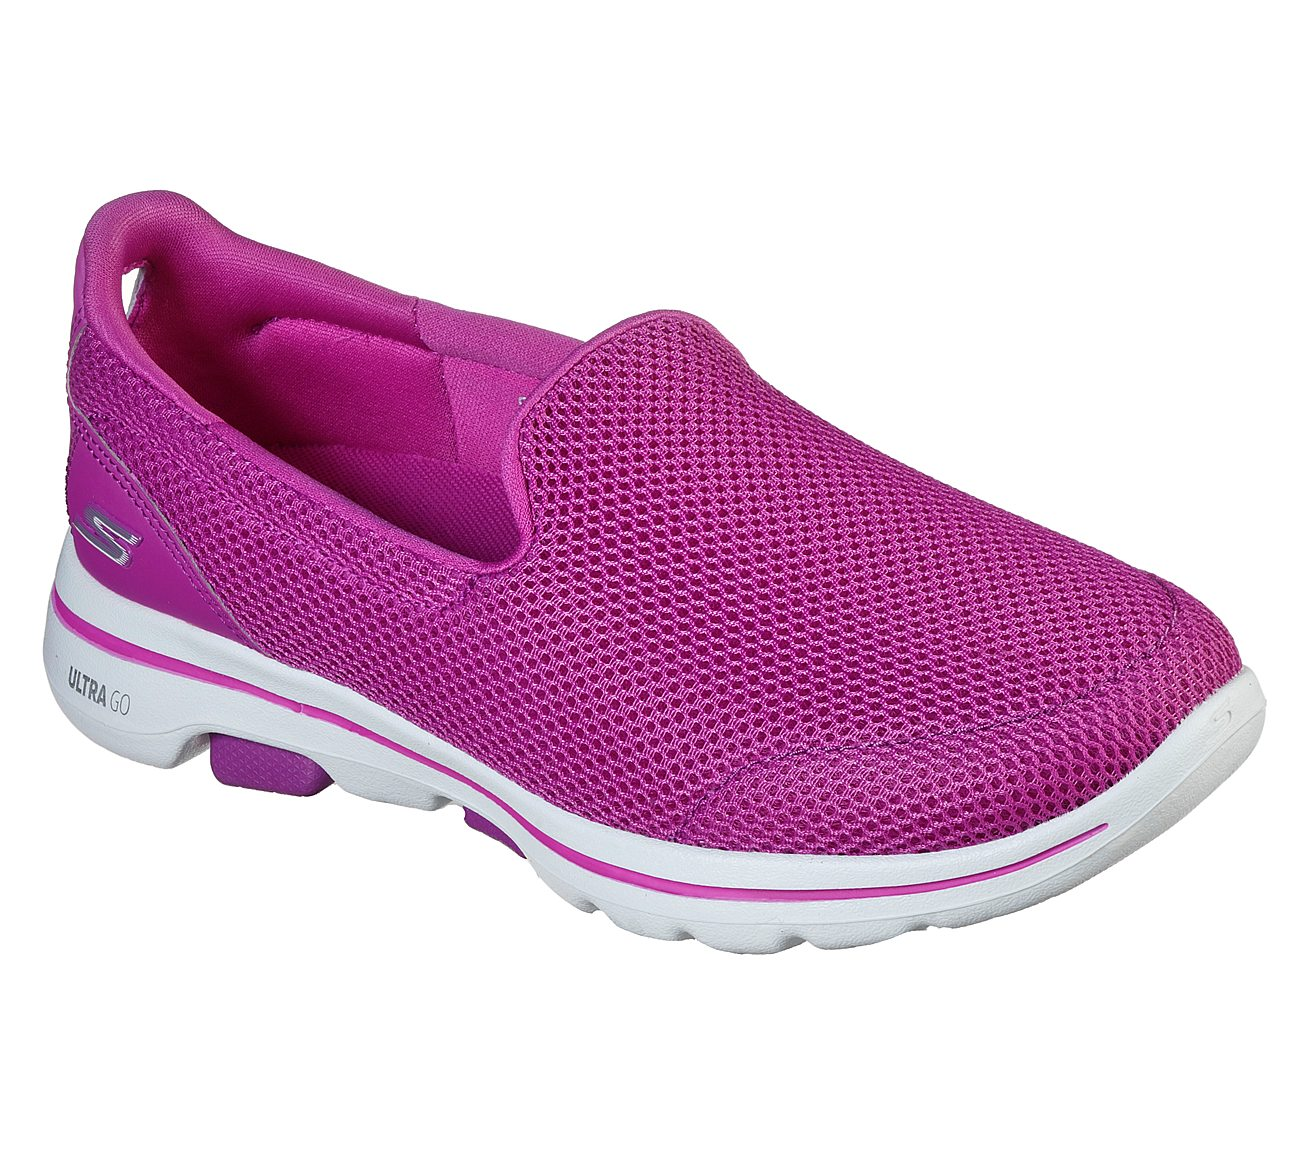 skechers shoes in